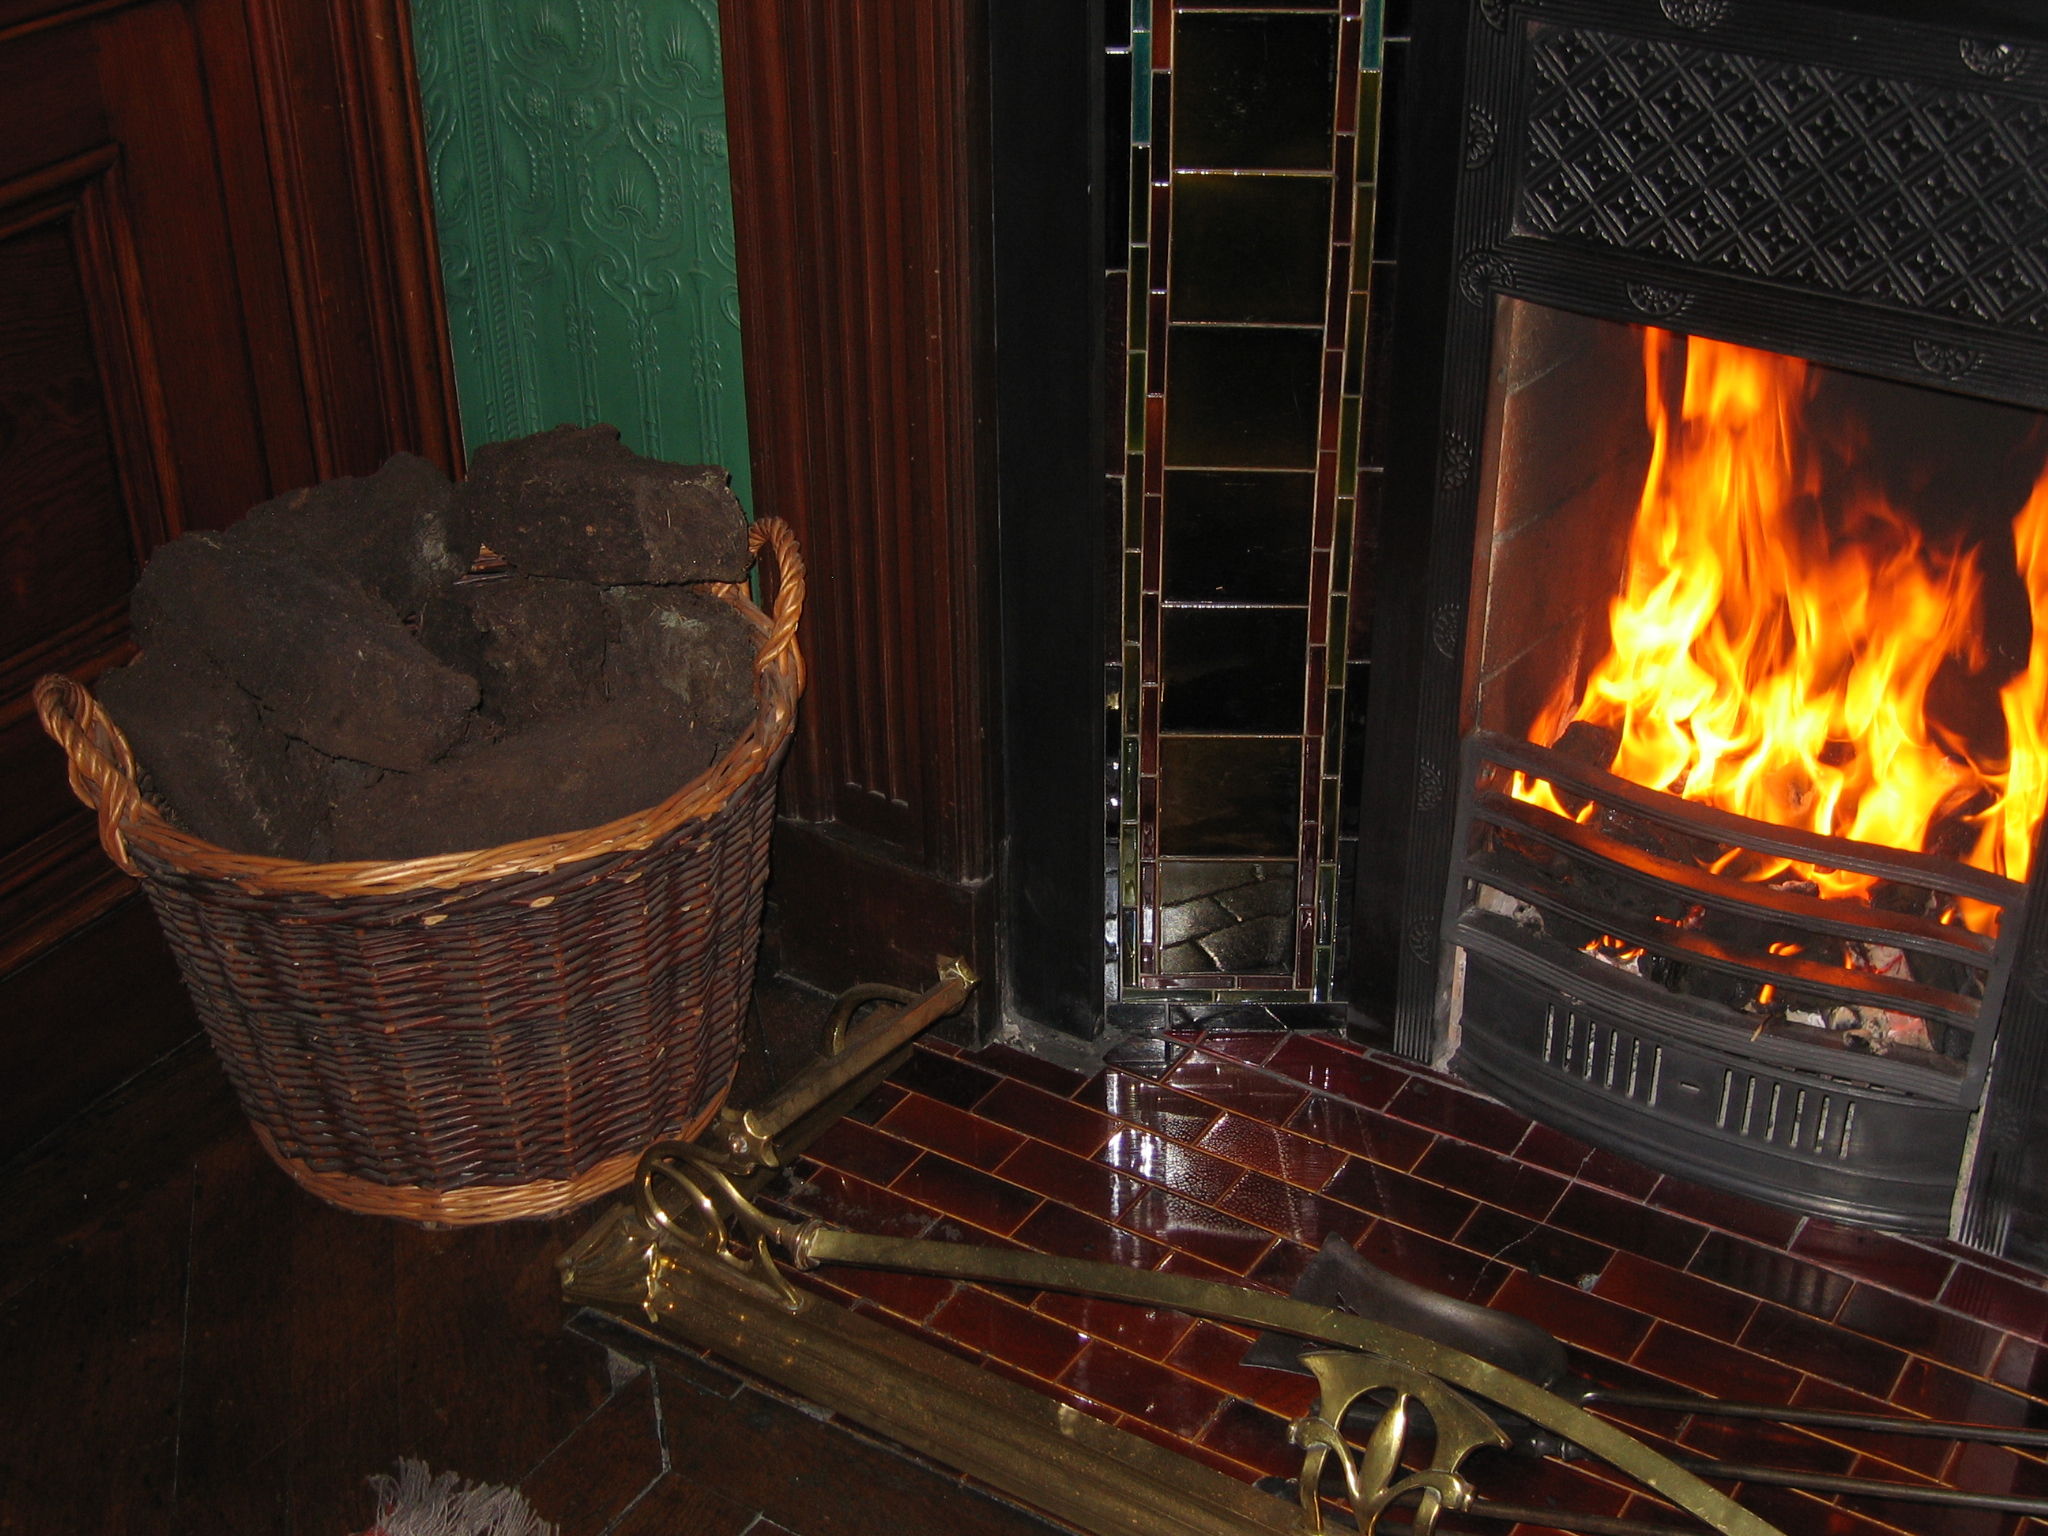 File:Fireplace with Peat.JPG - Wikimedia Commons